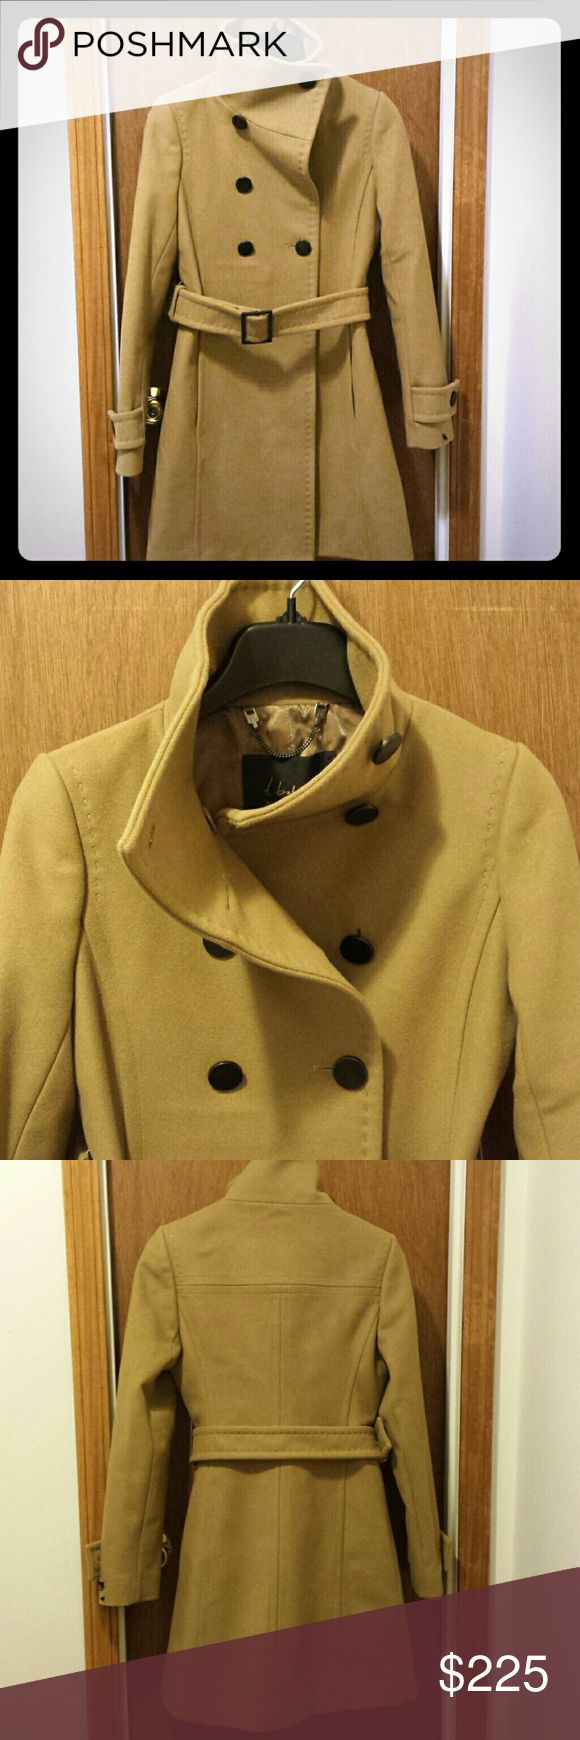 Aritzia Bromley coat Like new condition, bought in 2014 and worn twice during thanksgiving break. This coat is still available online but the fabric from 2014 is thicker, denser, more smooth than the current Bromley coat in stores. I was at an aritzia store recently and checked out the wool quality. This coat was made in Canada and costed the equivalent of 350$ USD, I'm selling for way less! Aritzia Jackets & Coats Pea Coats